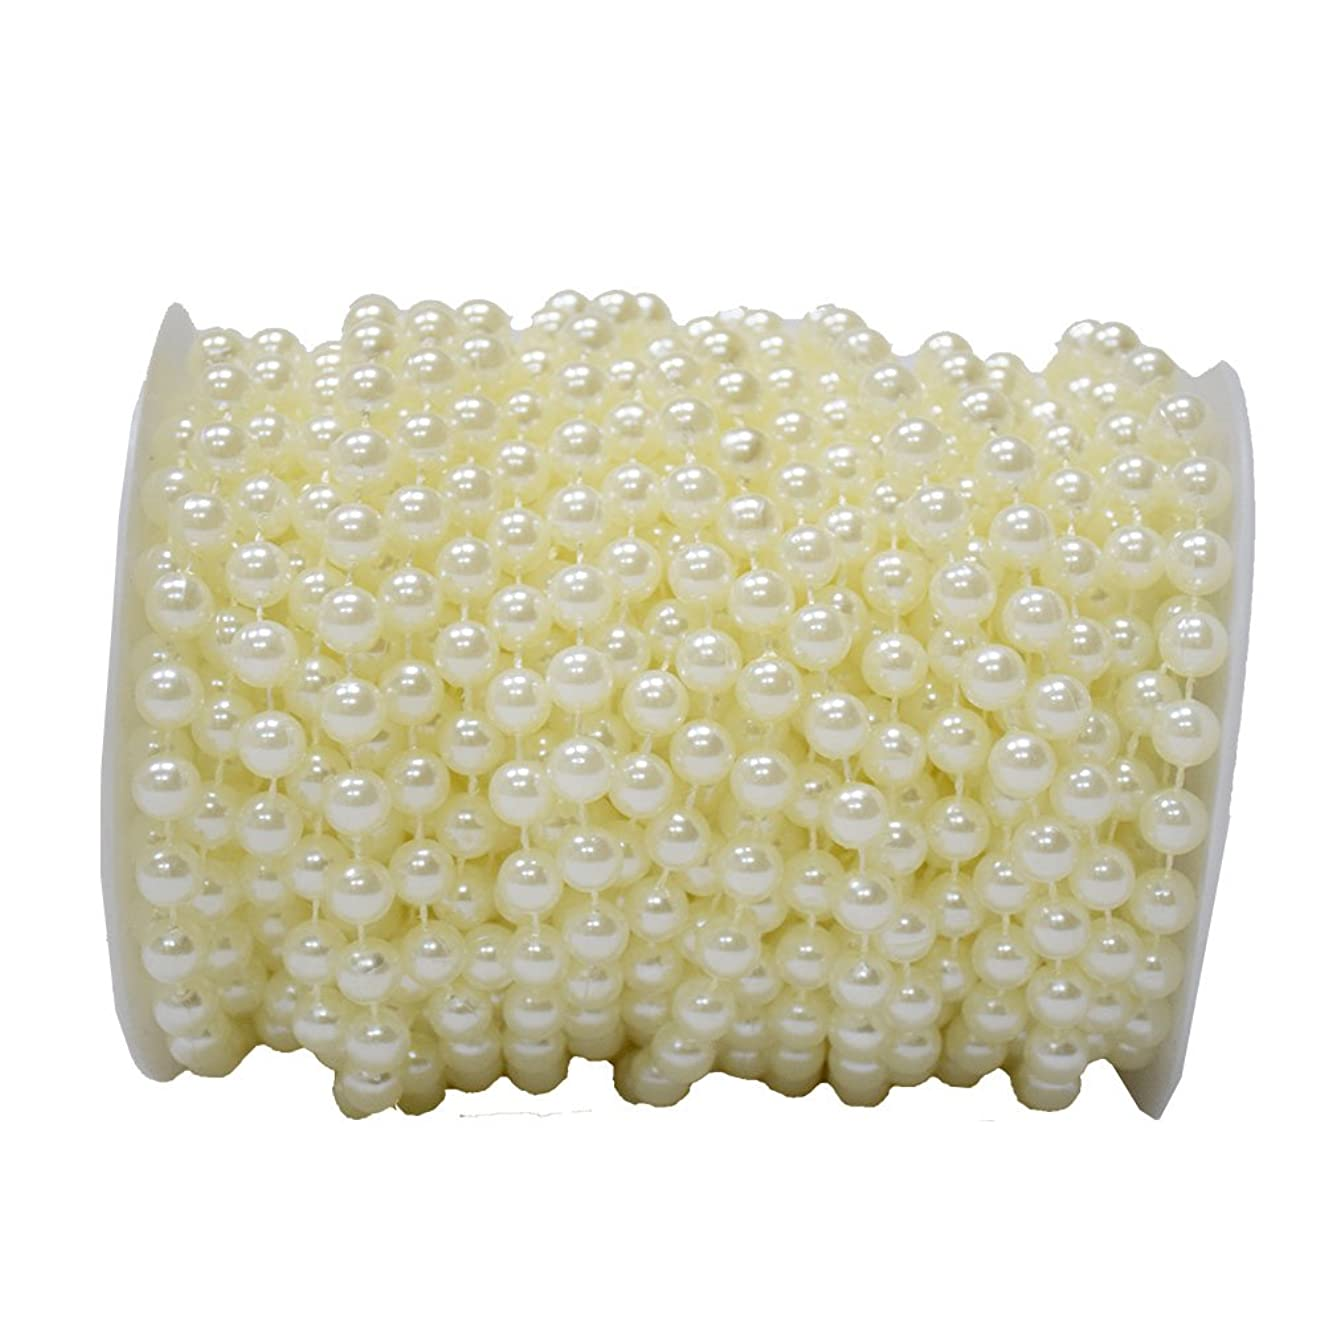 BoJia 10 mm Large Ivory Pearls Faux Crystal Beads by The Roll for Flowers Wedding Party Decoration